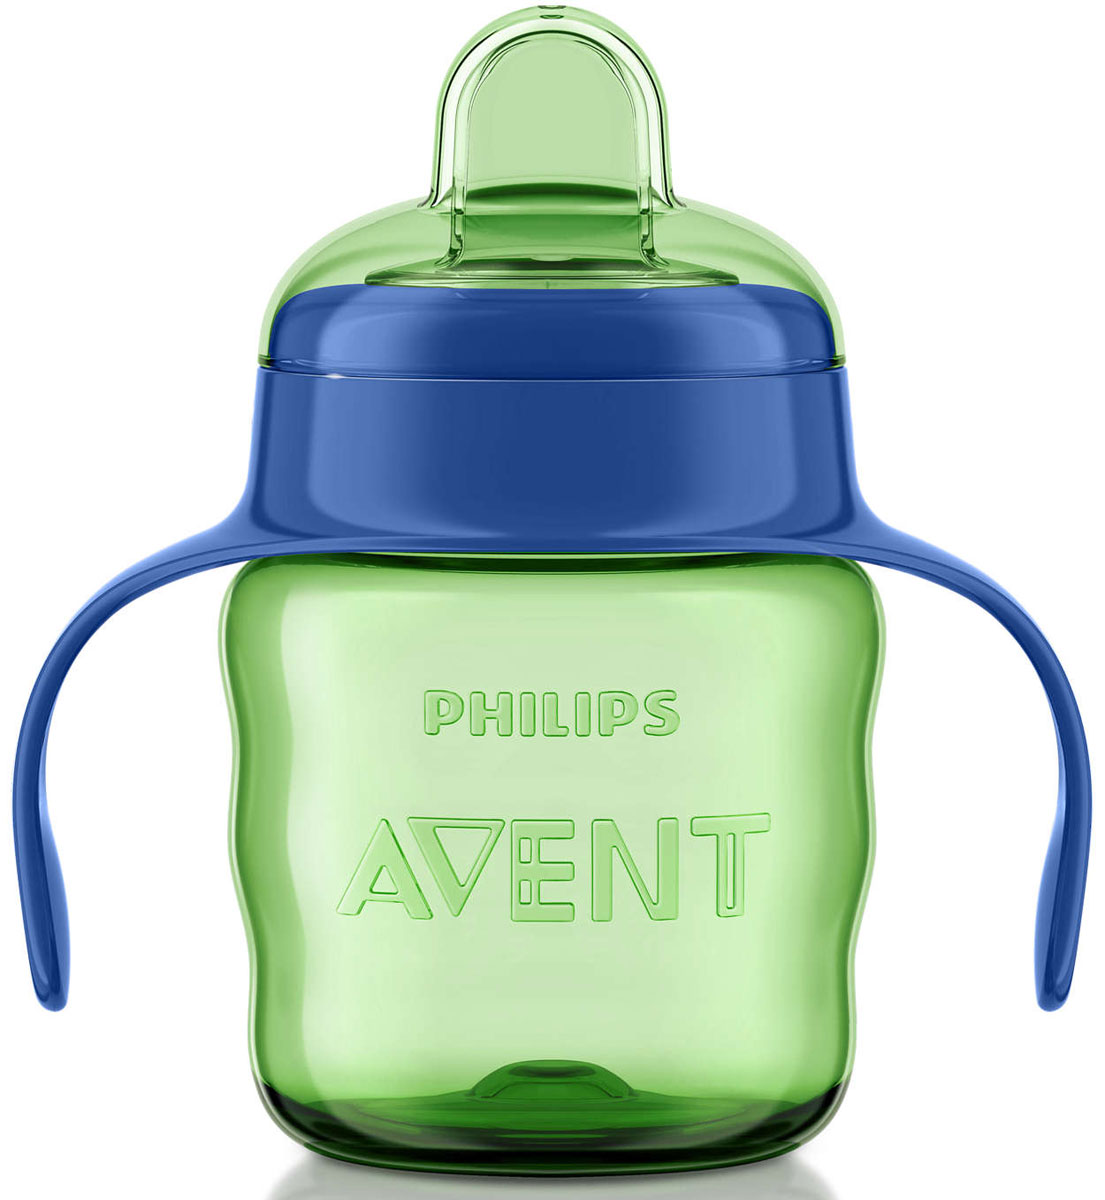 Philips Avent Чашка-поильник Comfort от 6 месяцев цвет салатовый синий 200 мл SCF551/00 ykywbike 2018 cycling bib sets summer short sleeve mtb bike jersey set cycling clothing ropa maillot ciclismo bicycle clothes